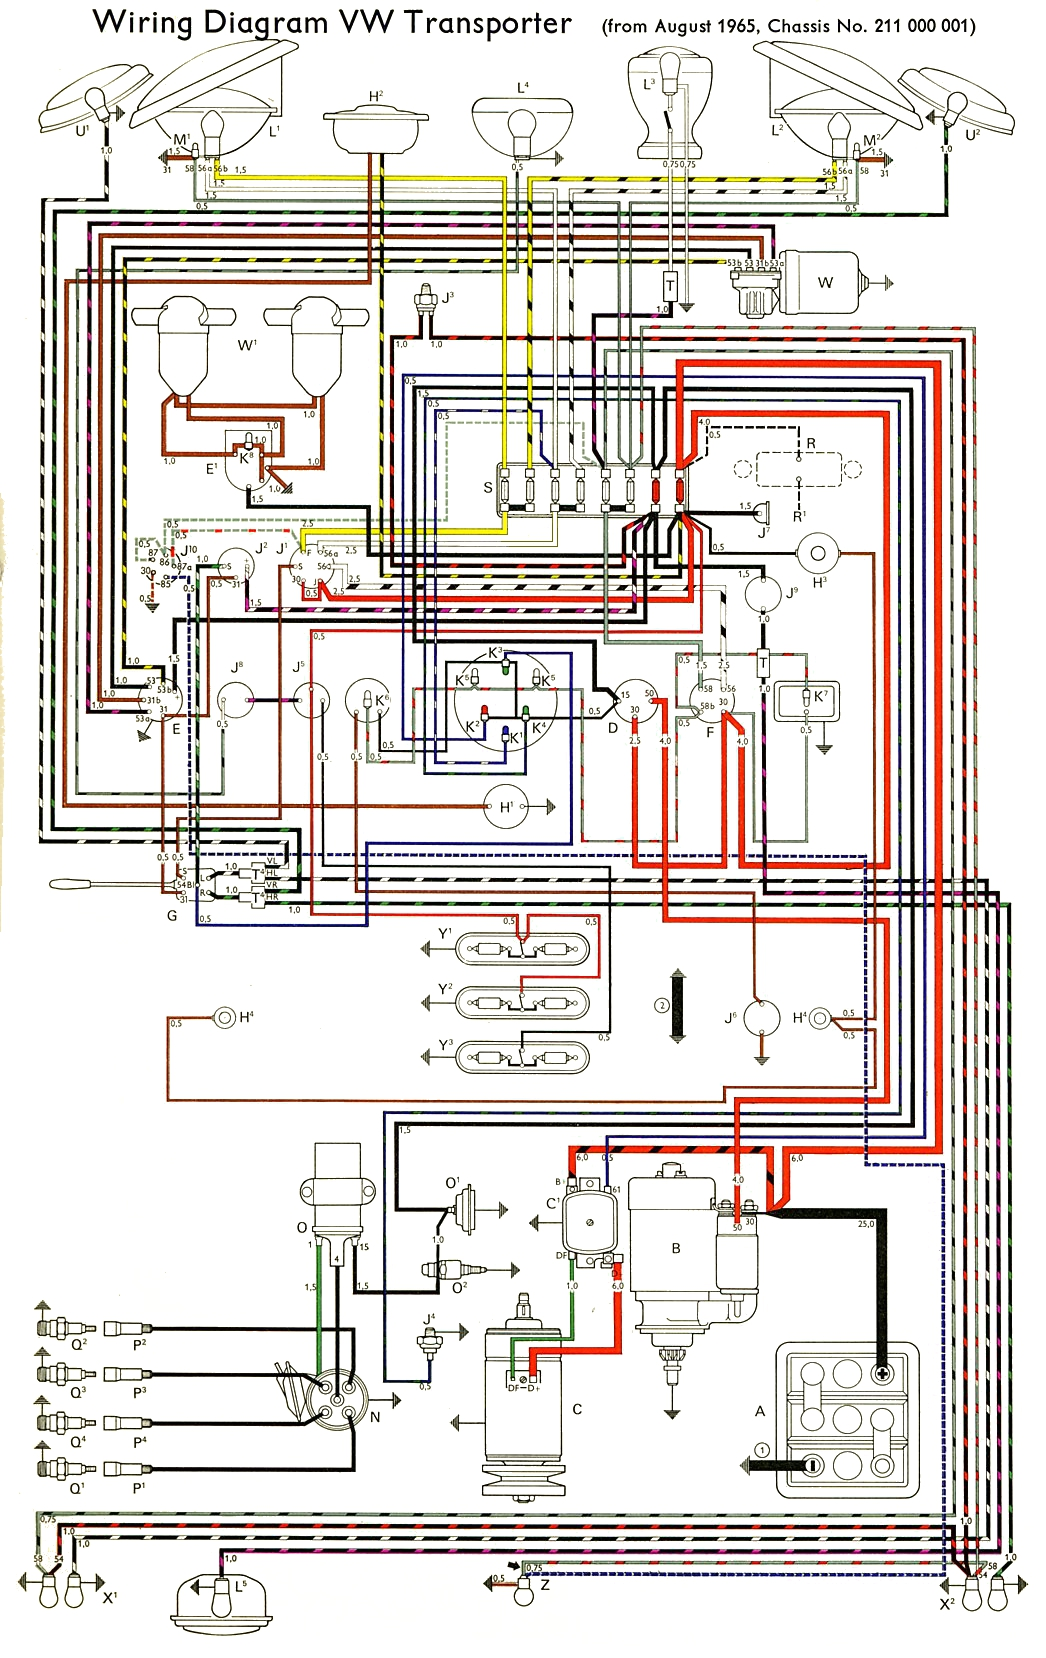 taskmaster f1f5105n wiring diagram electrical wiring library Wiring Harness Diagram 66 vw wiring diagram radio data wiring schema rh site de joueurs com